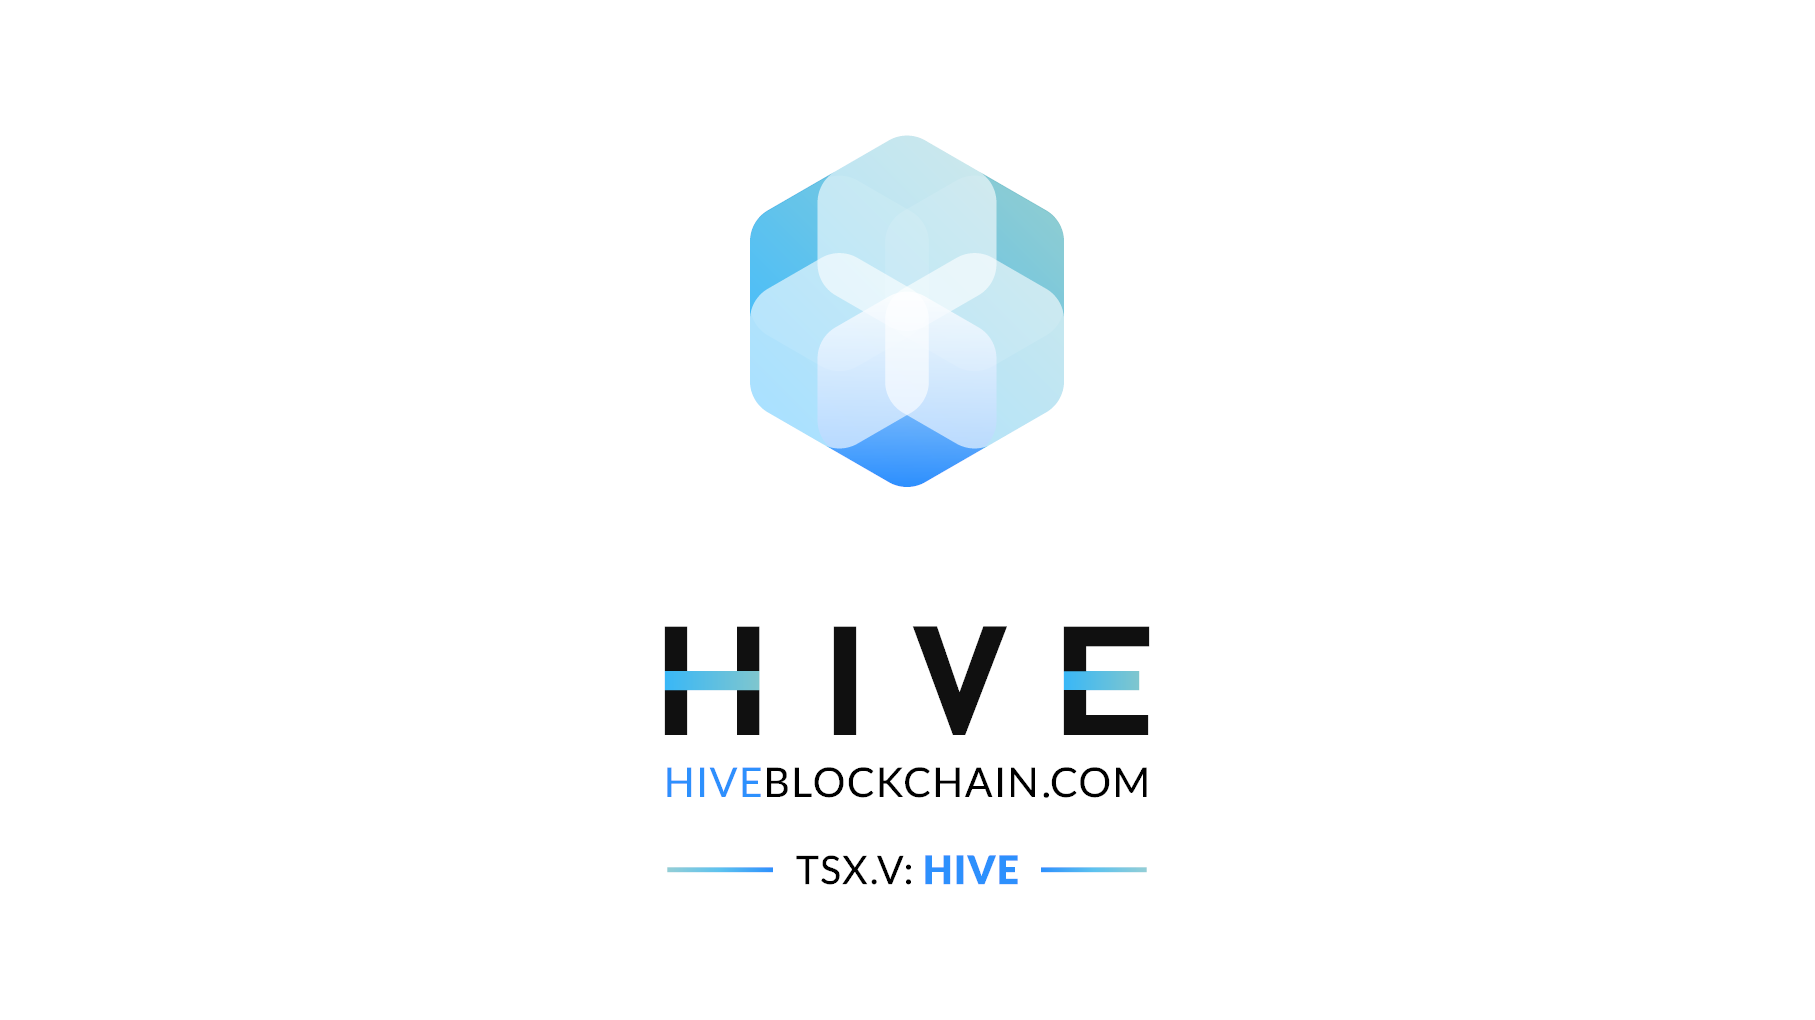 HIVE Blockchain Expands Bitcoin Mining Capacity Again With Purchase of 3,000 Next Generation Miners to be Operational in 60 Days to Accelerate Cash Flow